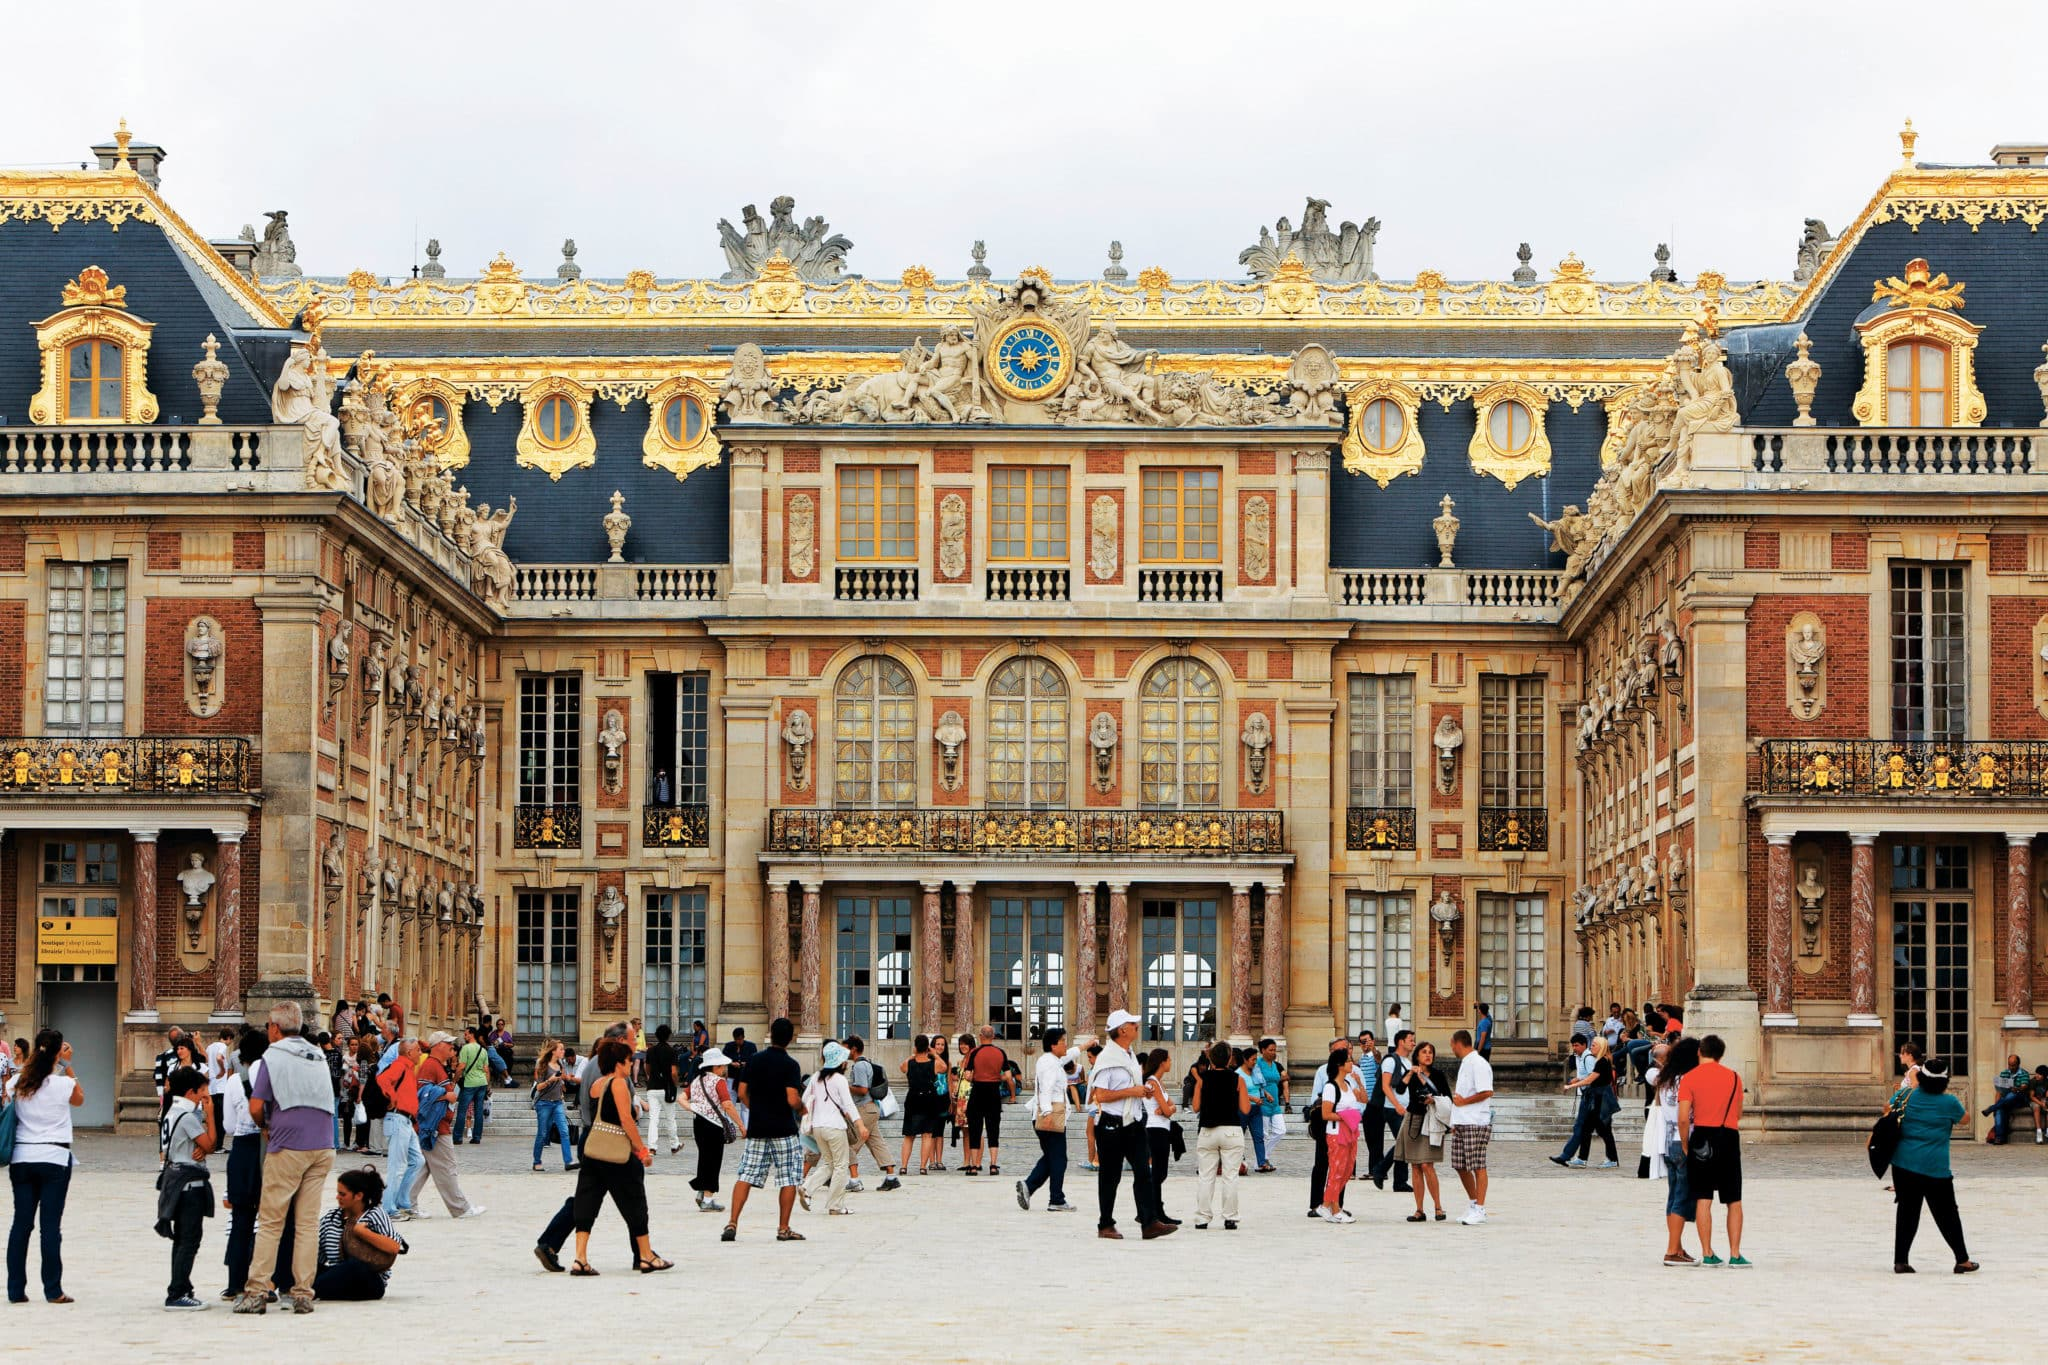 D20TEC People in front of the Palace of Versailles, Ile de France, France, Europe